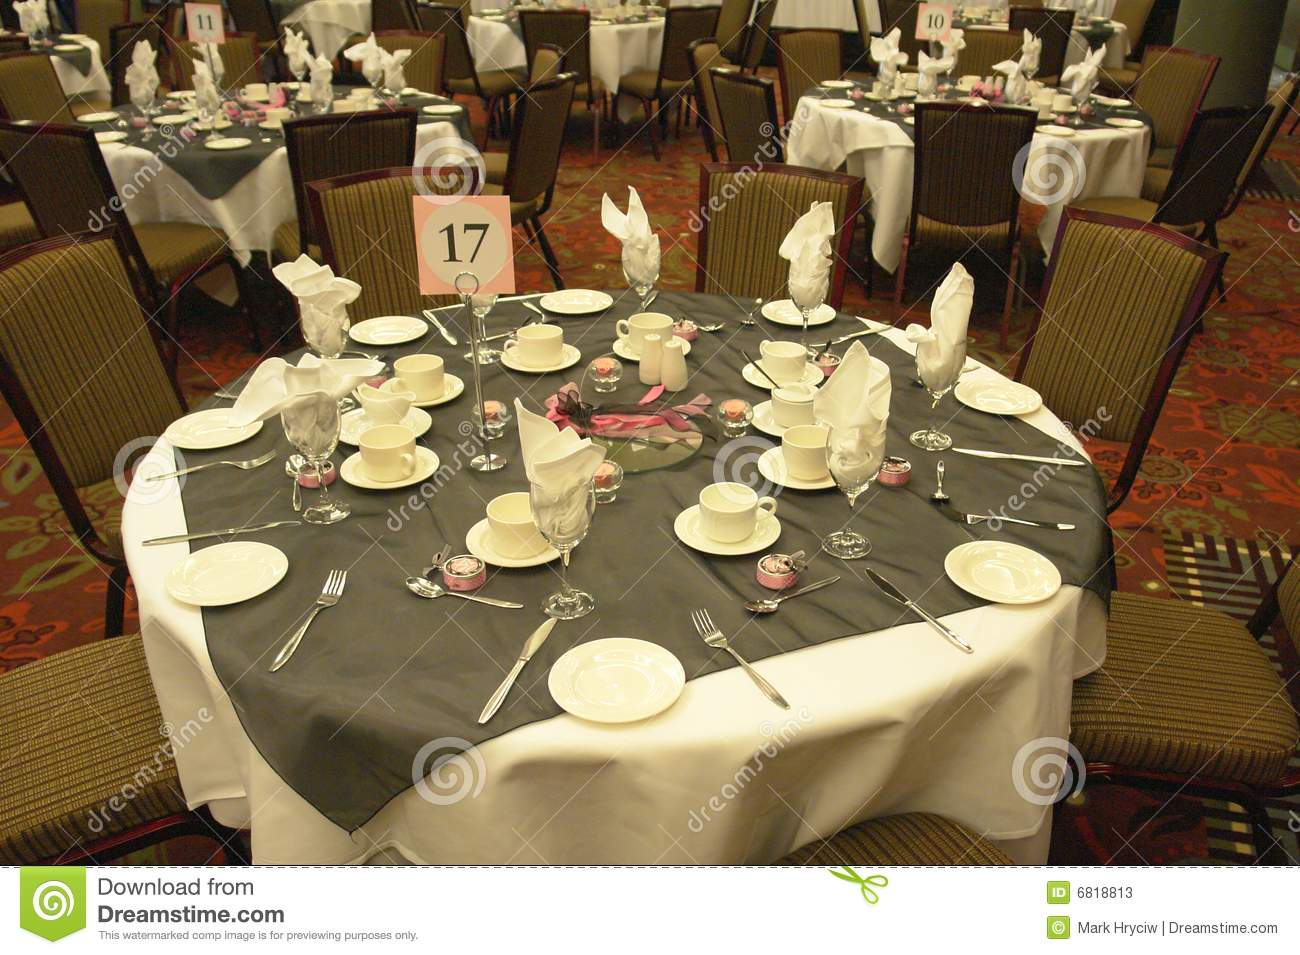 Wedding Table Settings stock image Image of cutlery  : wedding table settings 6818813 from www.dreamstime.com size 1300 x 955 jpeg 165kB